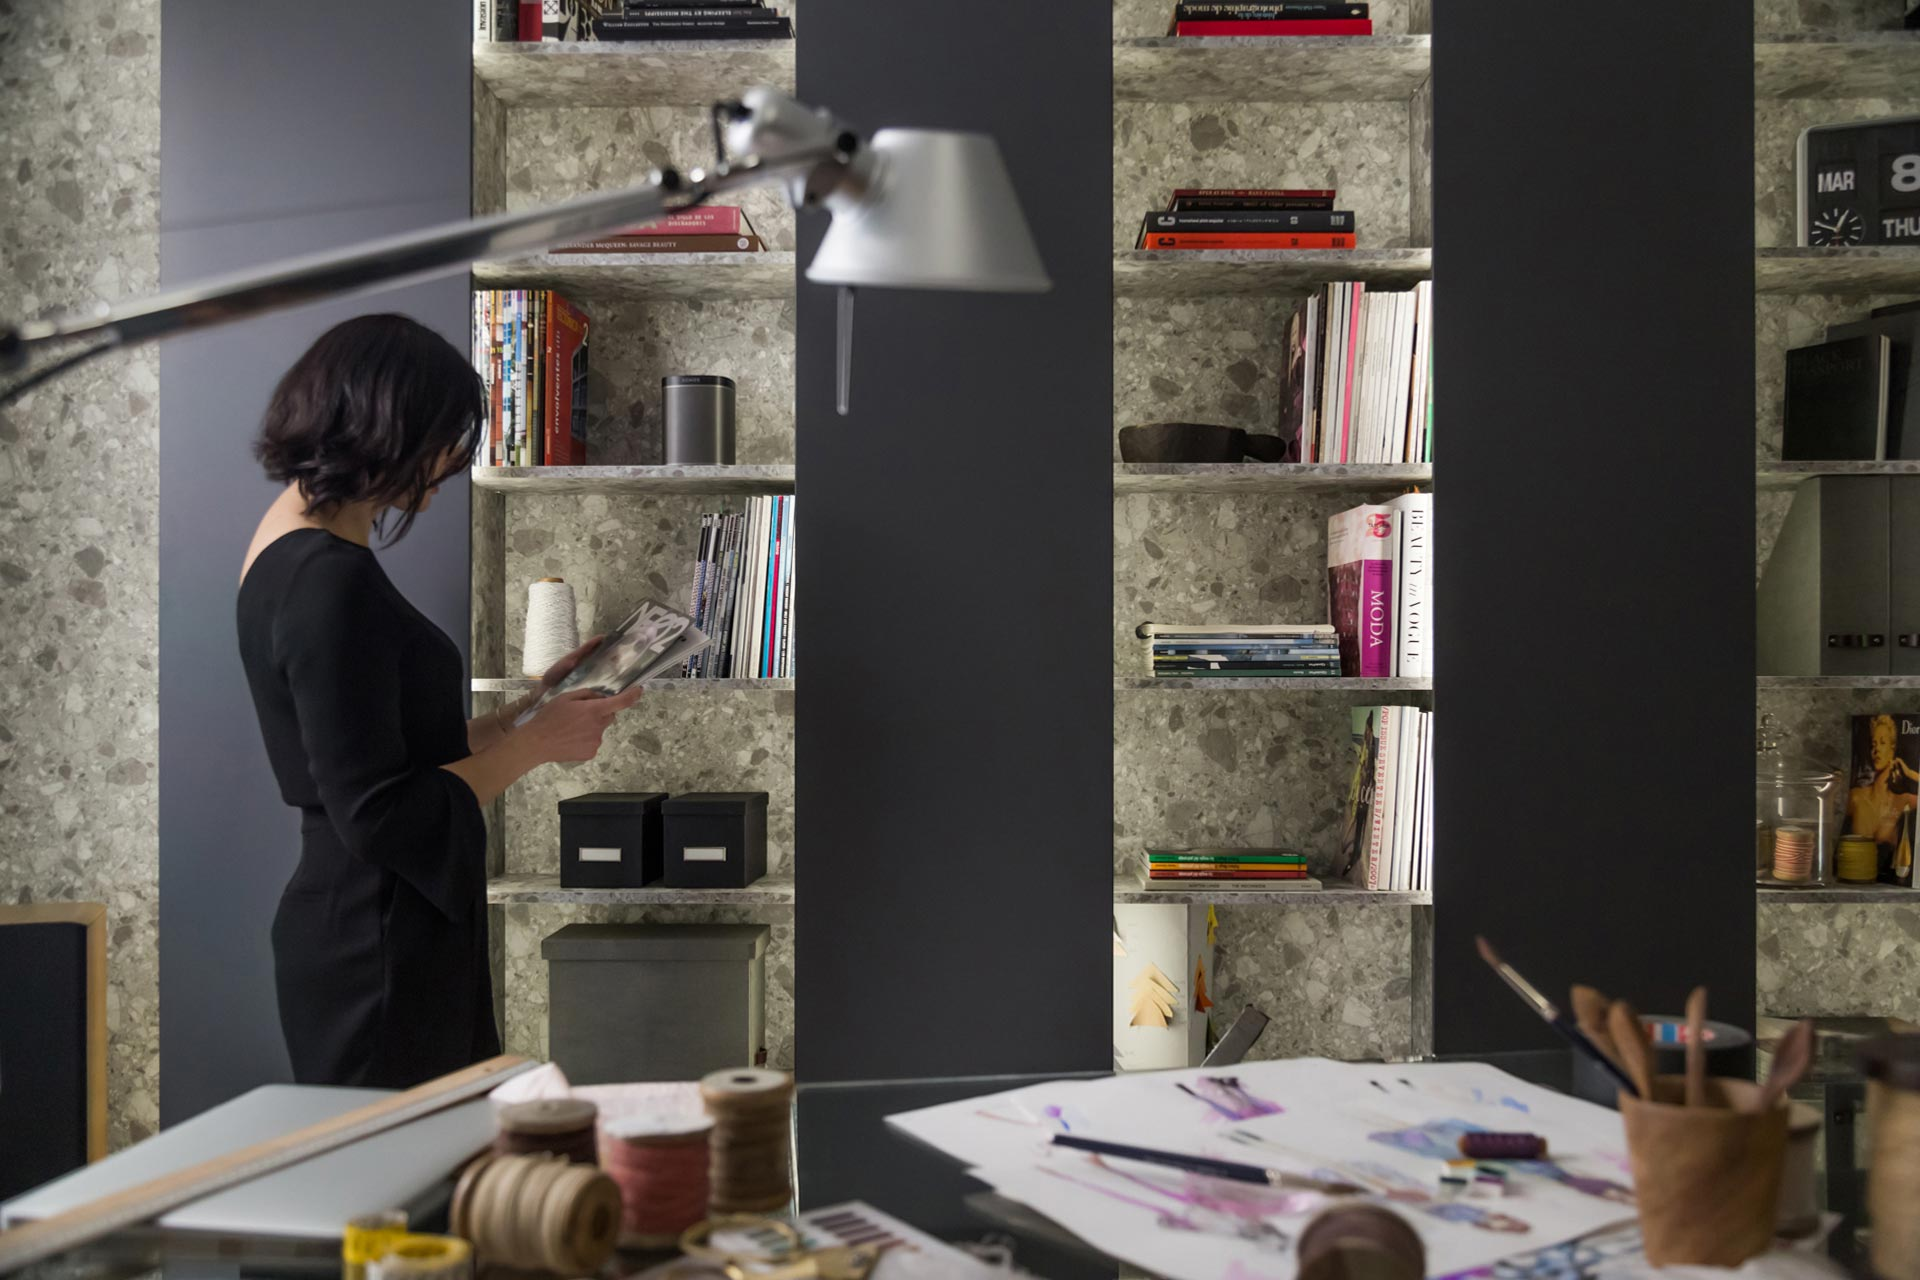 Santos presents its new shelving system for the living room